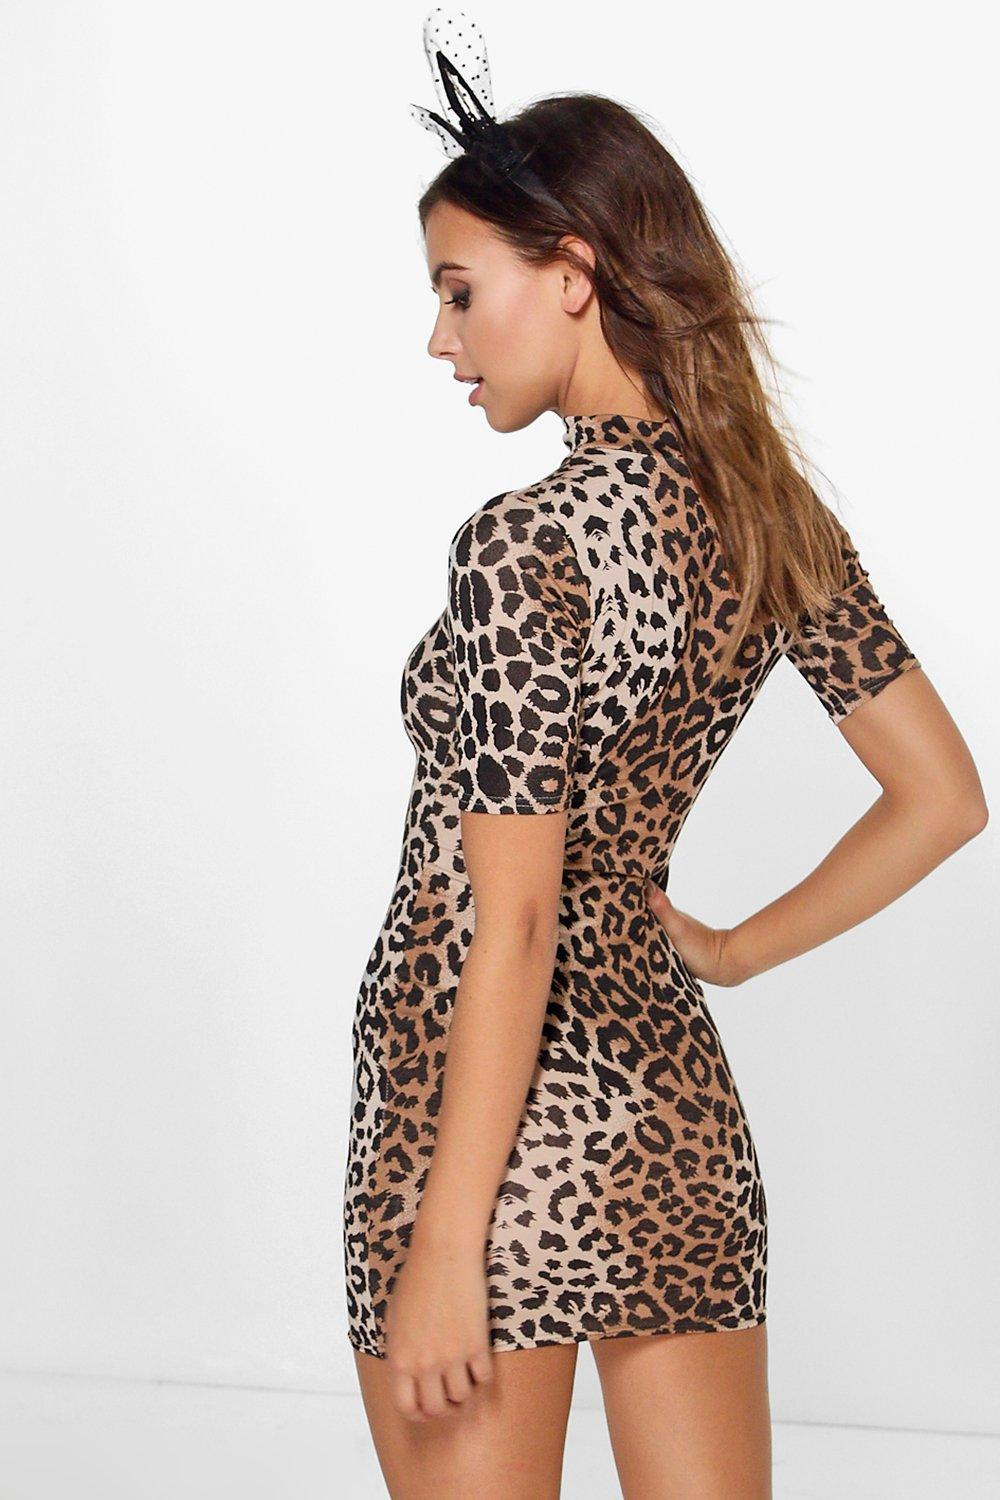 Boohoo Petite Halloween Leopard Print Bodycon Dress Outlet Real Discount Real Limited Edition Sale Online Fast Shipping Outlet Official OaFEv0